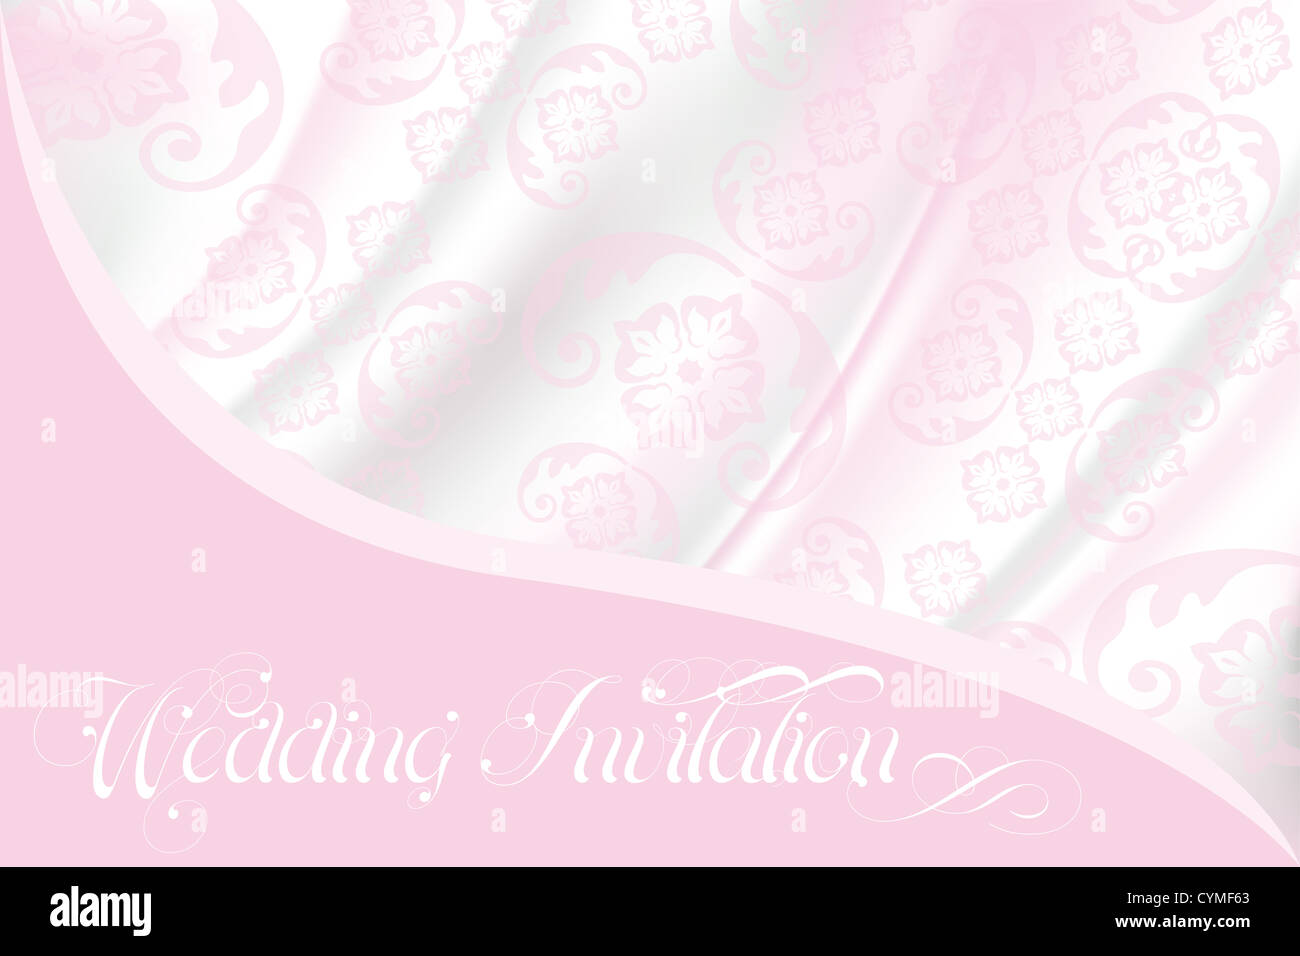 Wedding invitation with lace background, light pink ornamental ...